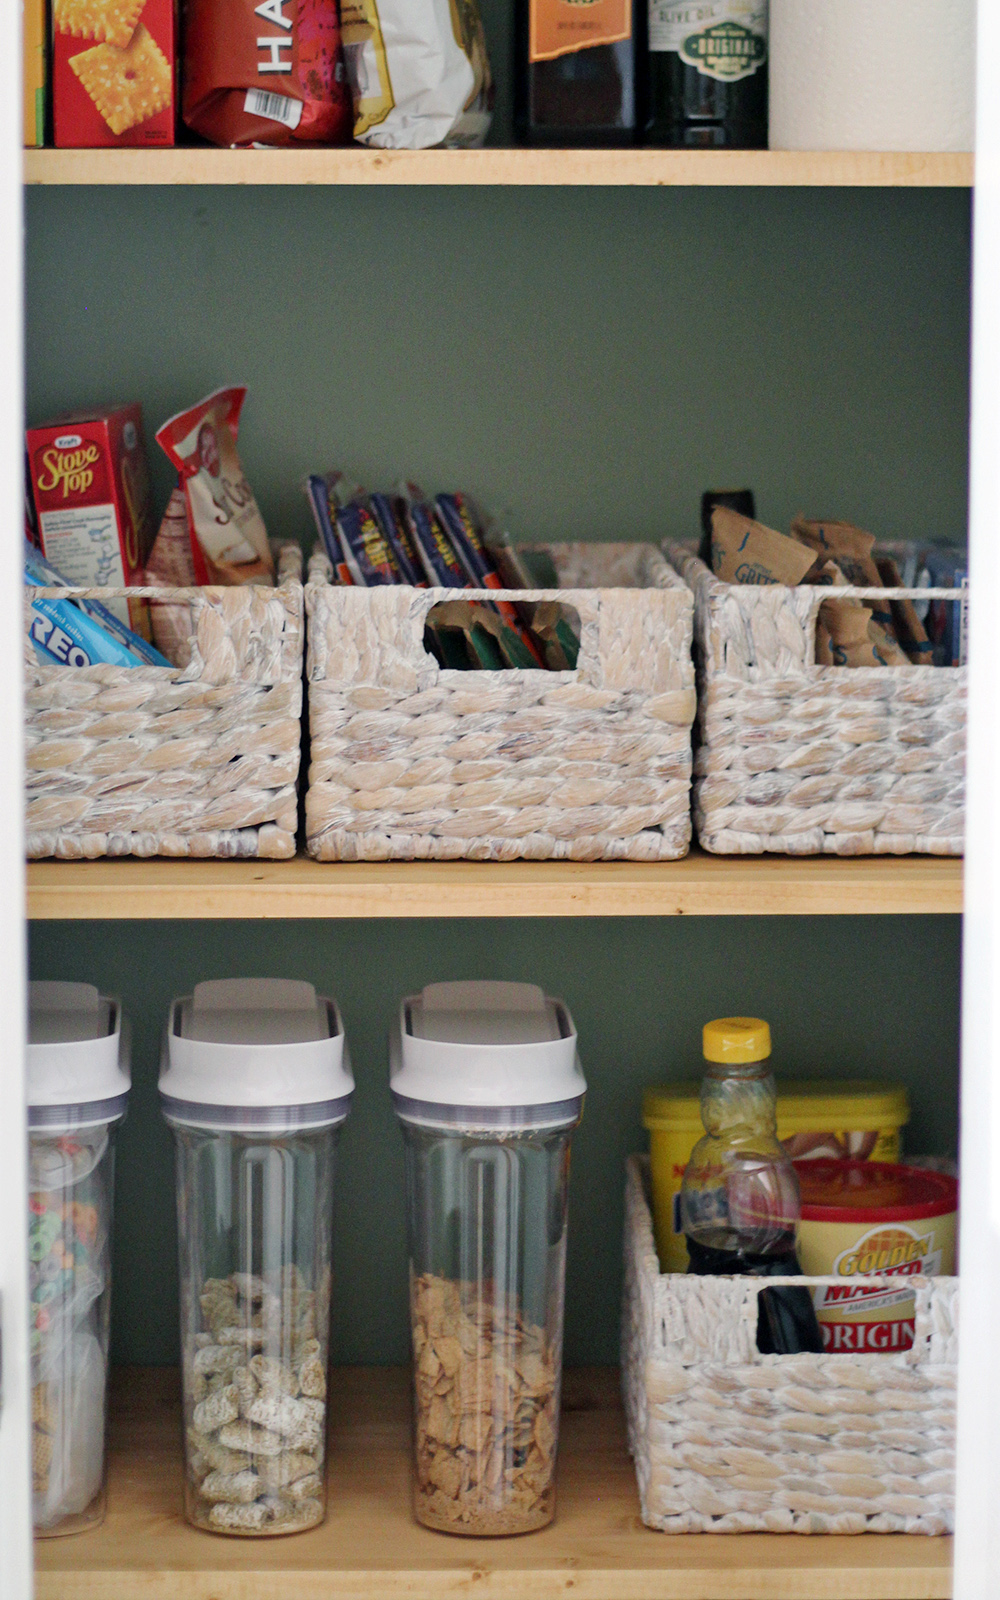 organize in baskets   practical tips for storing more in a kitchen pantry